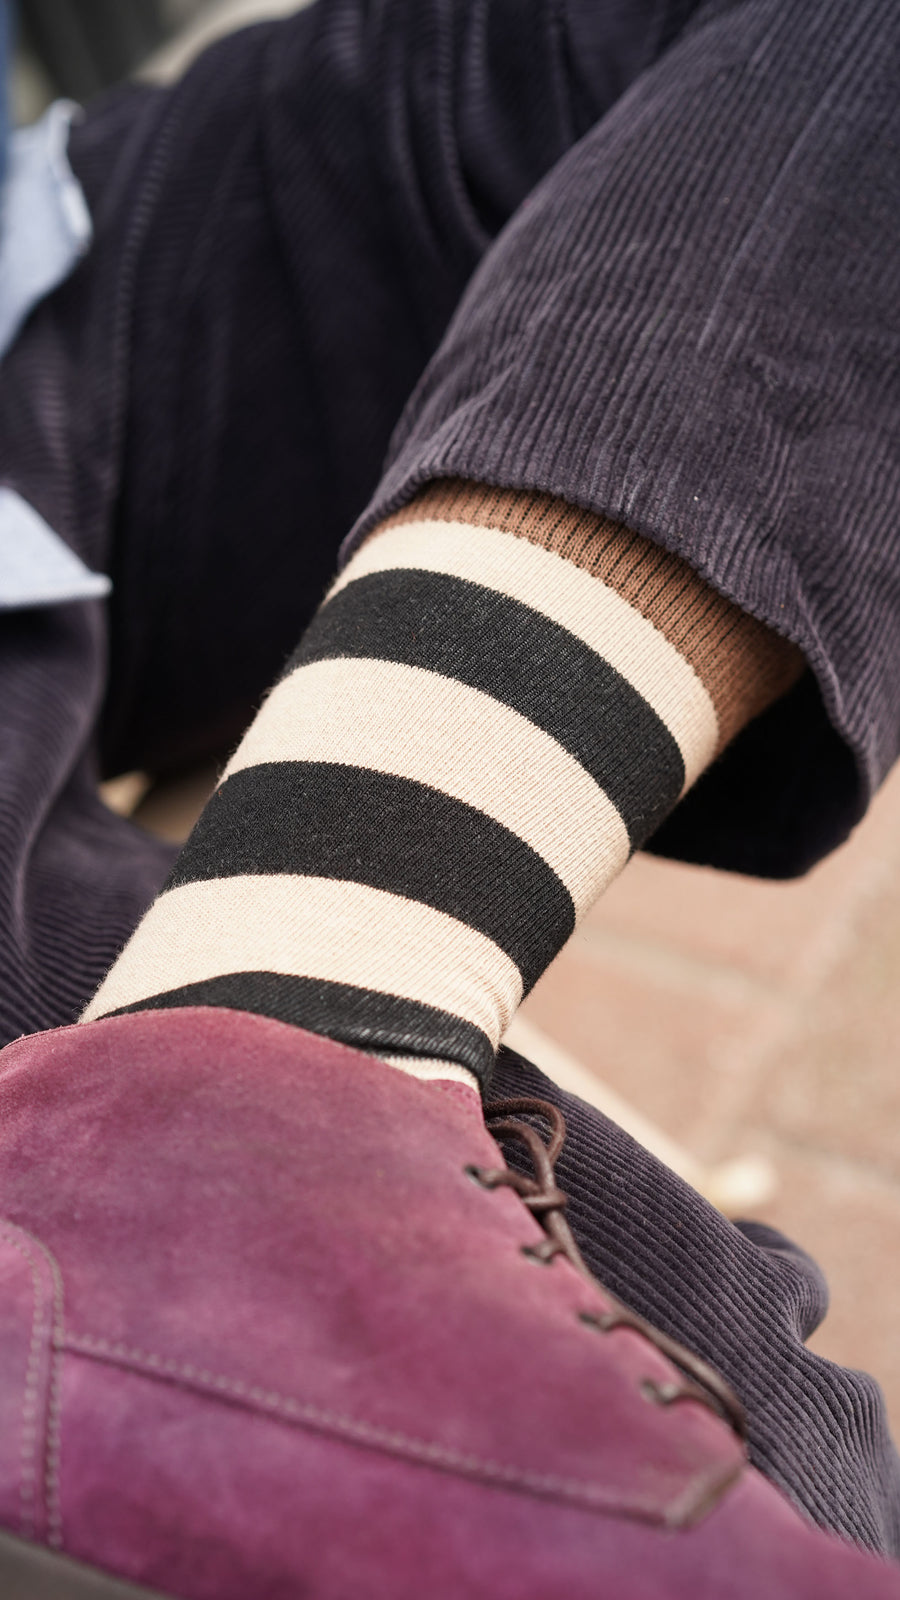 Men's Sand Stripped Socks black and brown